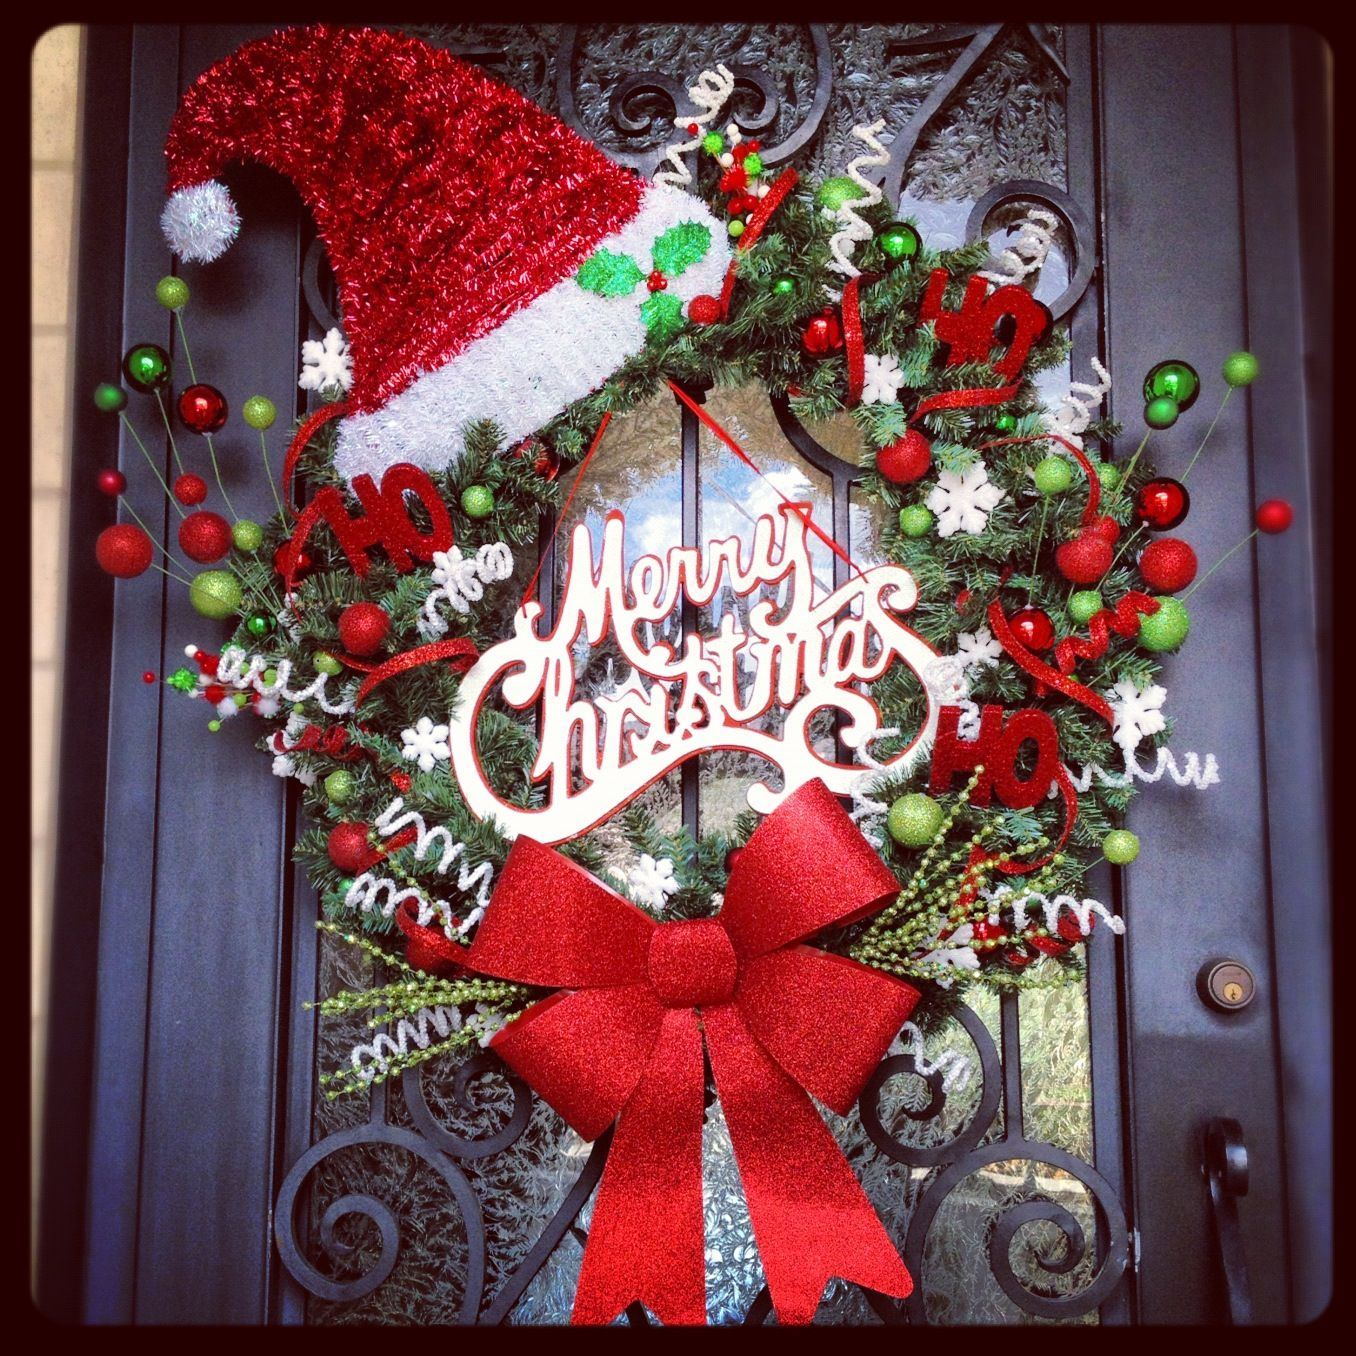 Homemade christmas decorations holiday pinterest Christmas wreath decorations